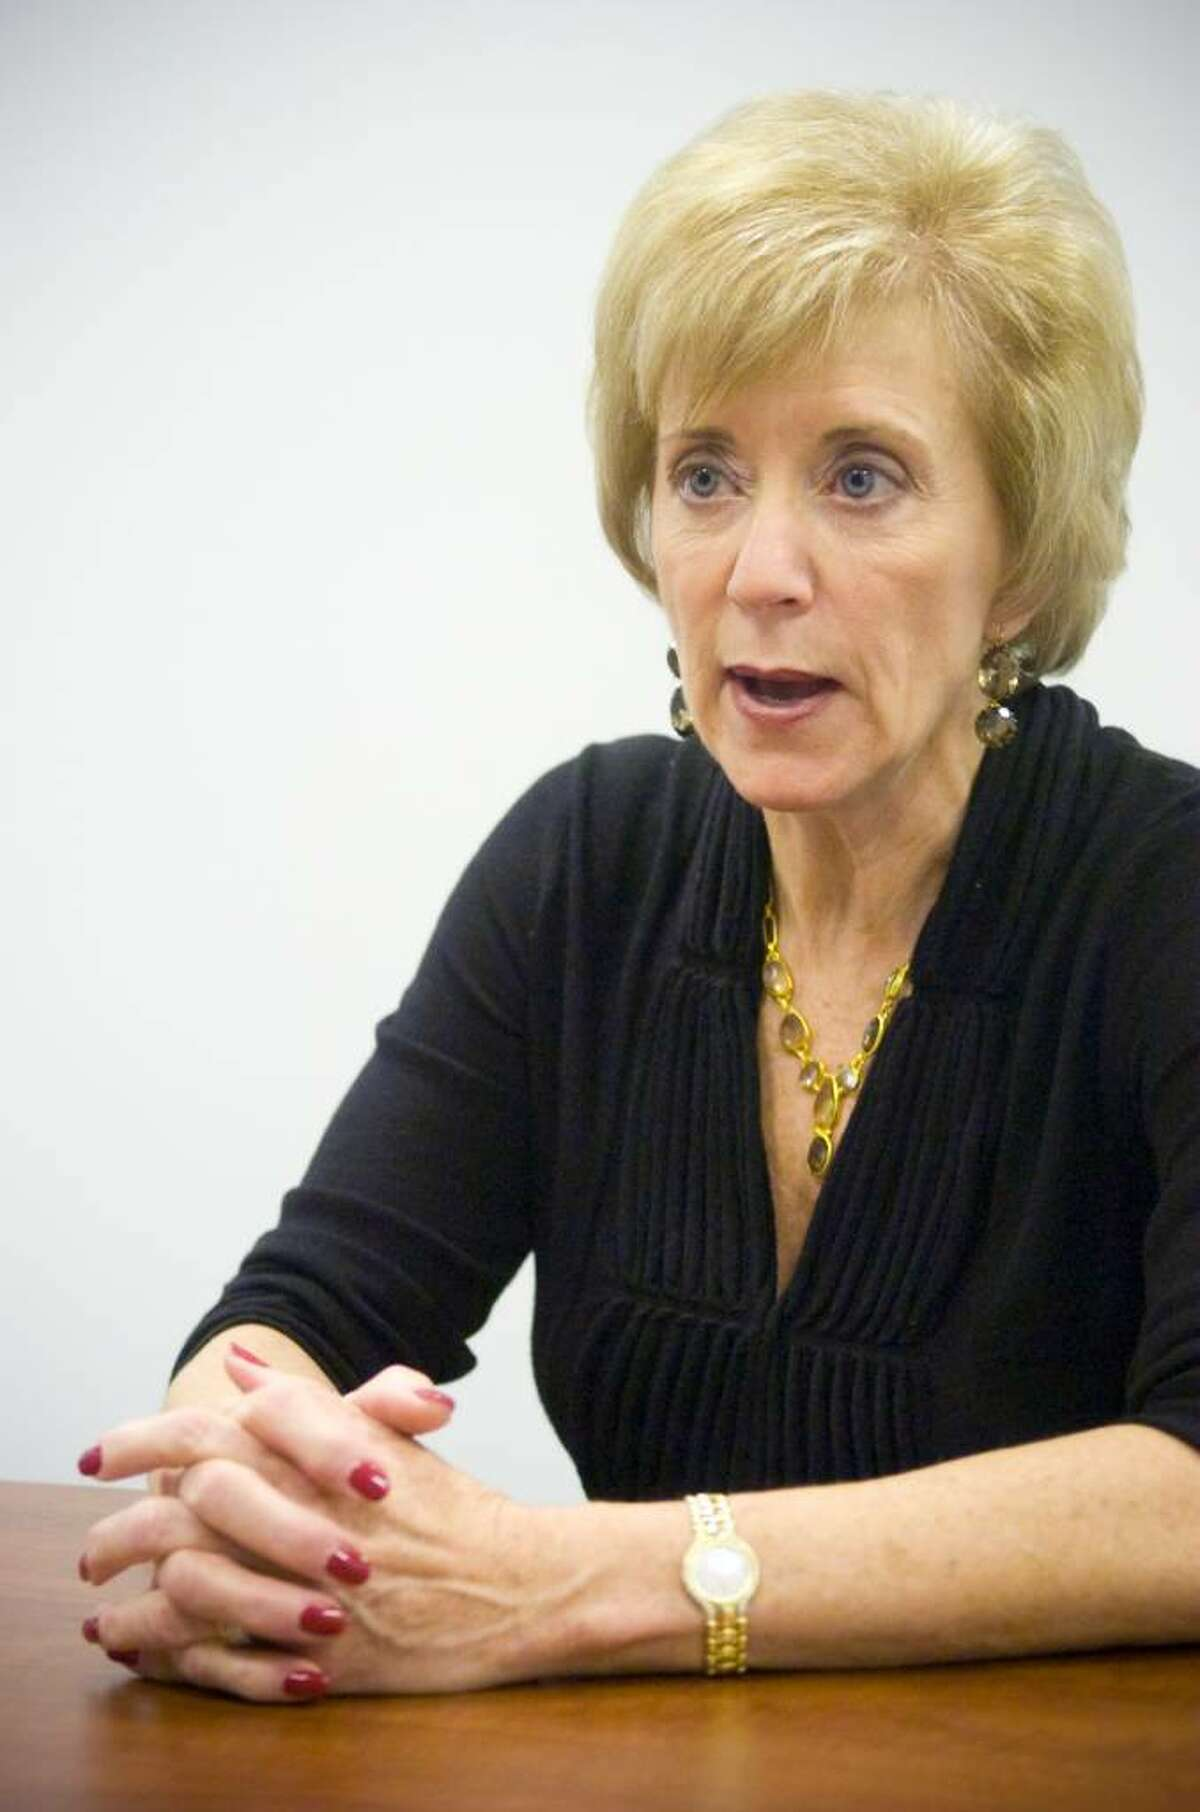 File photo of Linda McMahon, former CEO of World Wrestling Entertainment and current Republican candidate for U.S. Senate, during an interview at her campaign headquarters in Stamford, Conn. on Tuesday, Dec. 15, 2009.